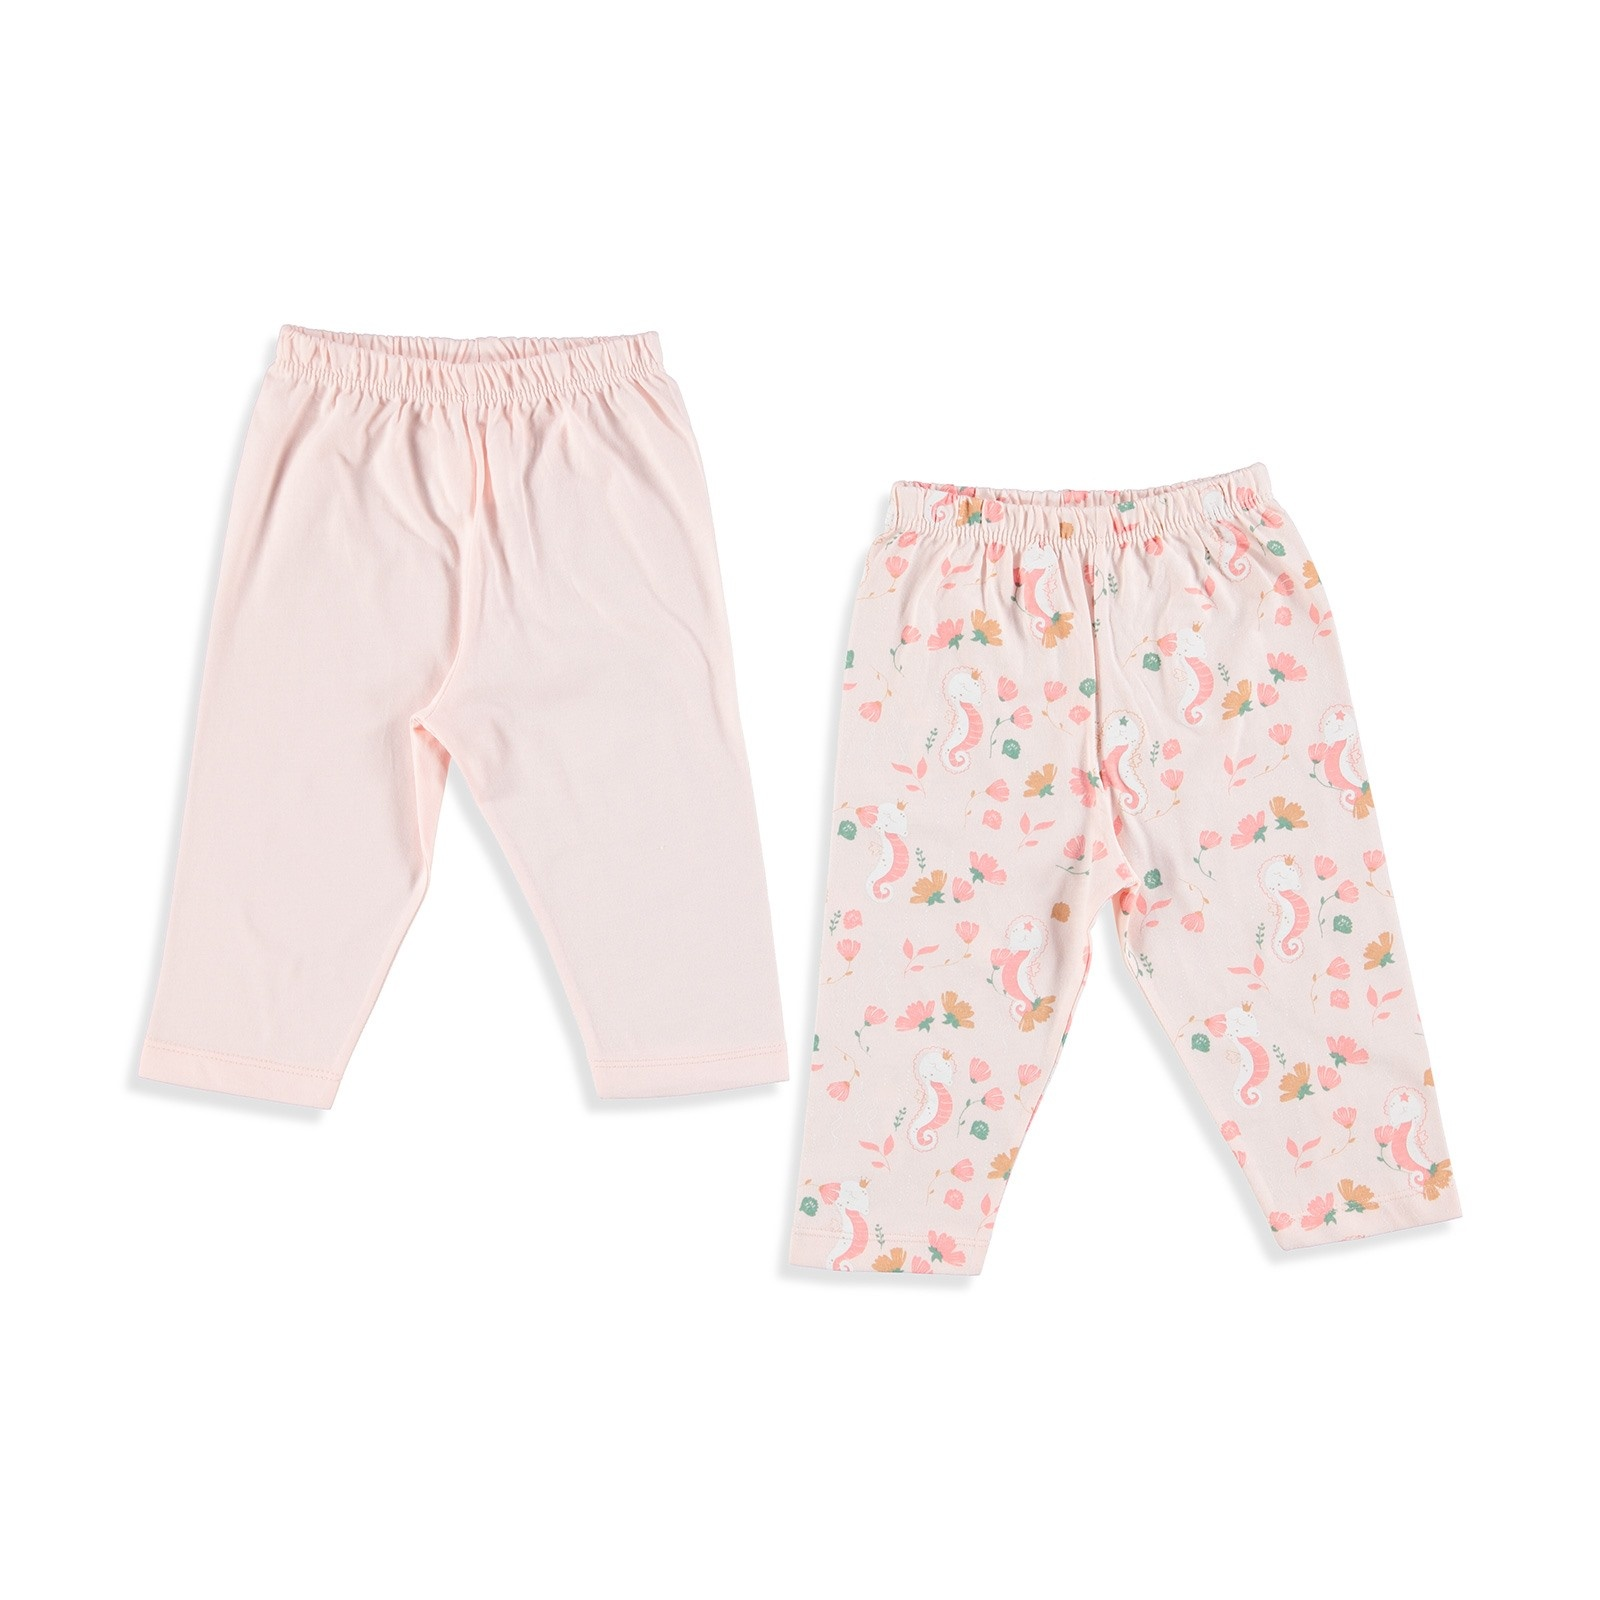 Ebebek Luggi Sea Horse Baby Girl Footless Trousers 2 Pack